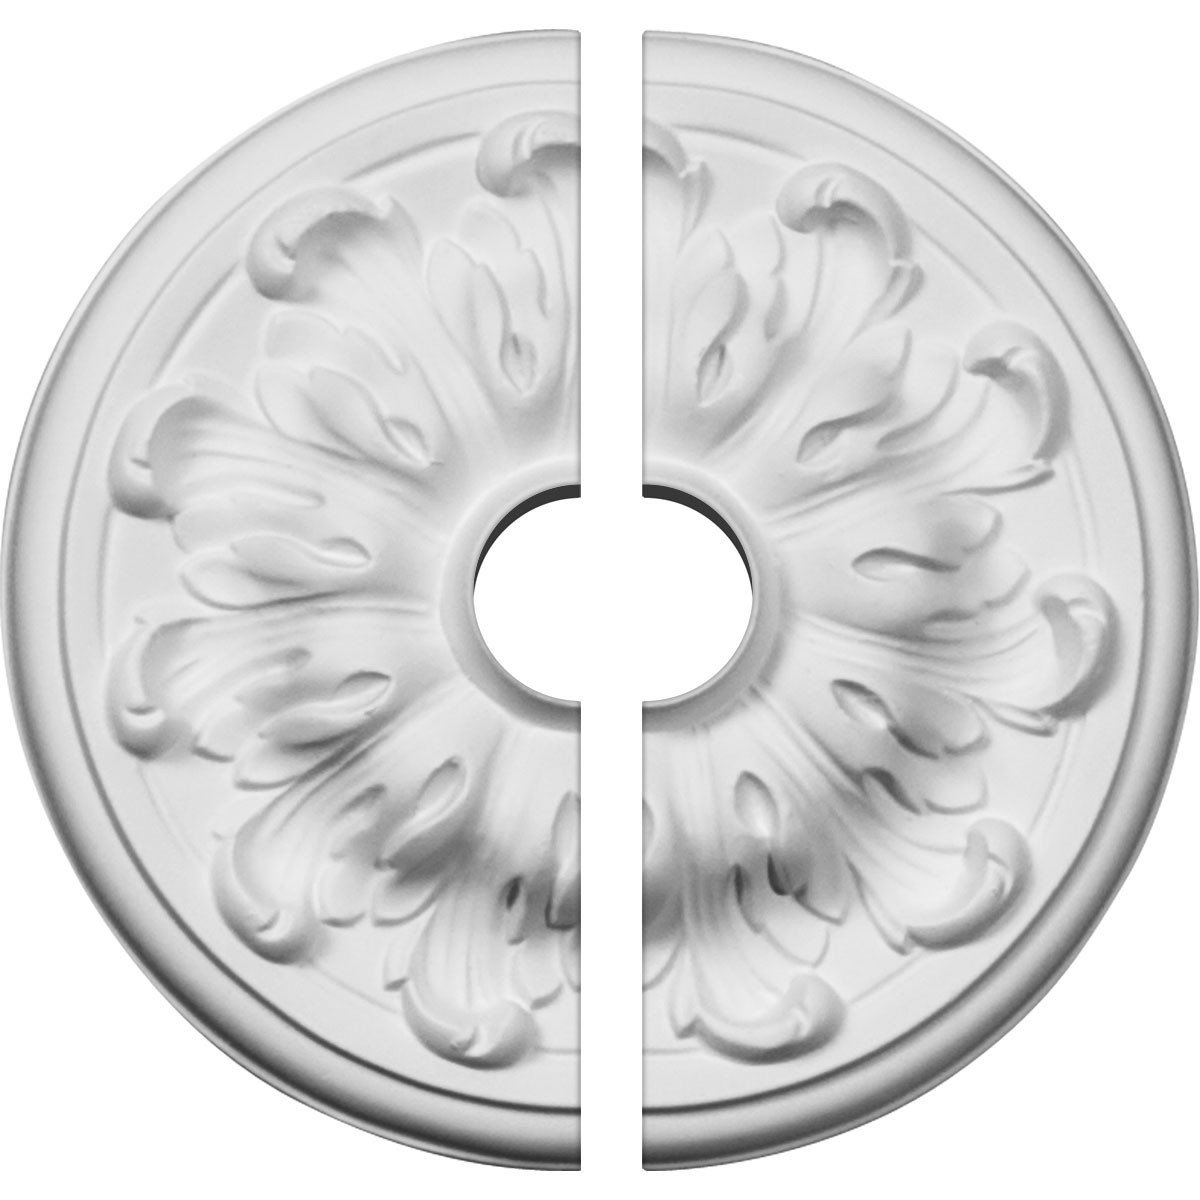 "EM-CM08MU2-01500 - 7 7/8""OD x 1 1/2""ID x 1/4""P Millin Ceiling Medallion, Two Piece (Fits Canopies up to 2"")"